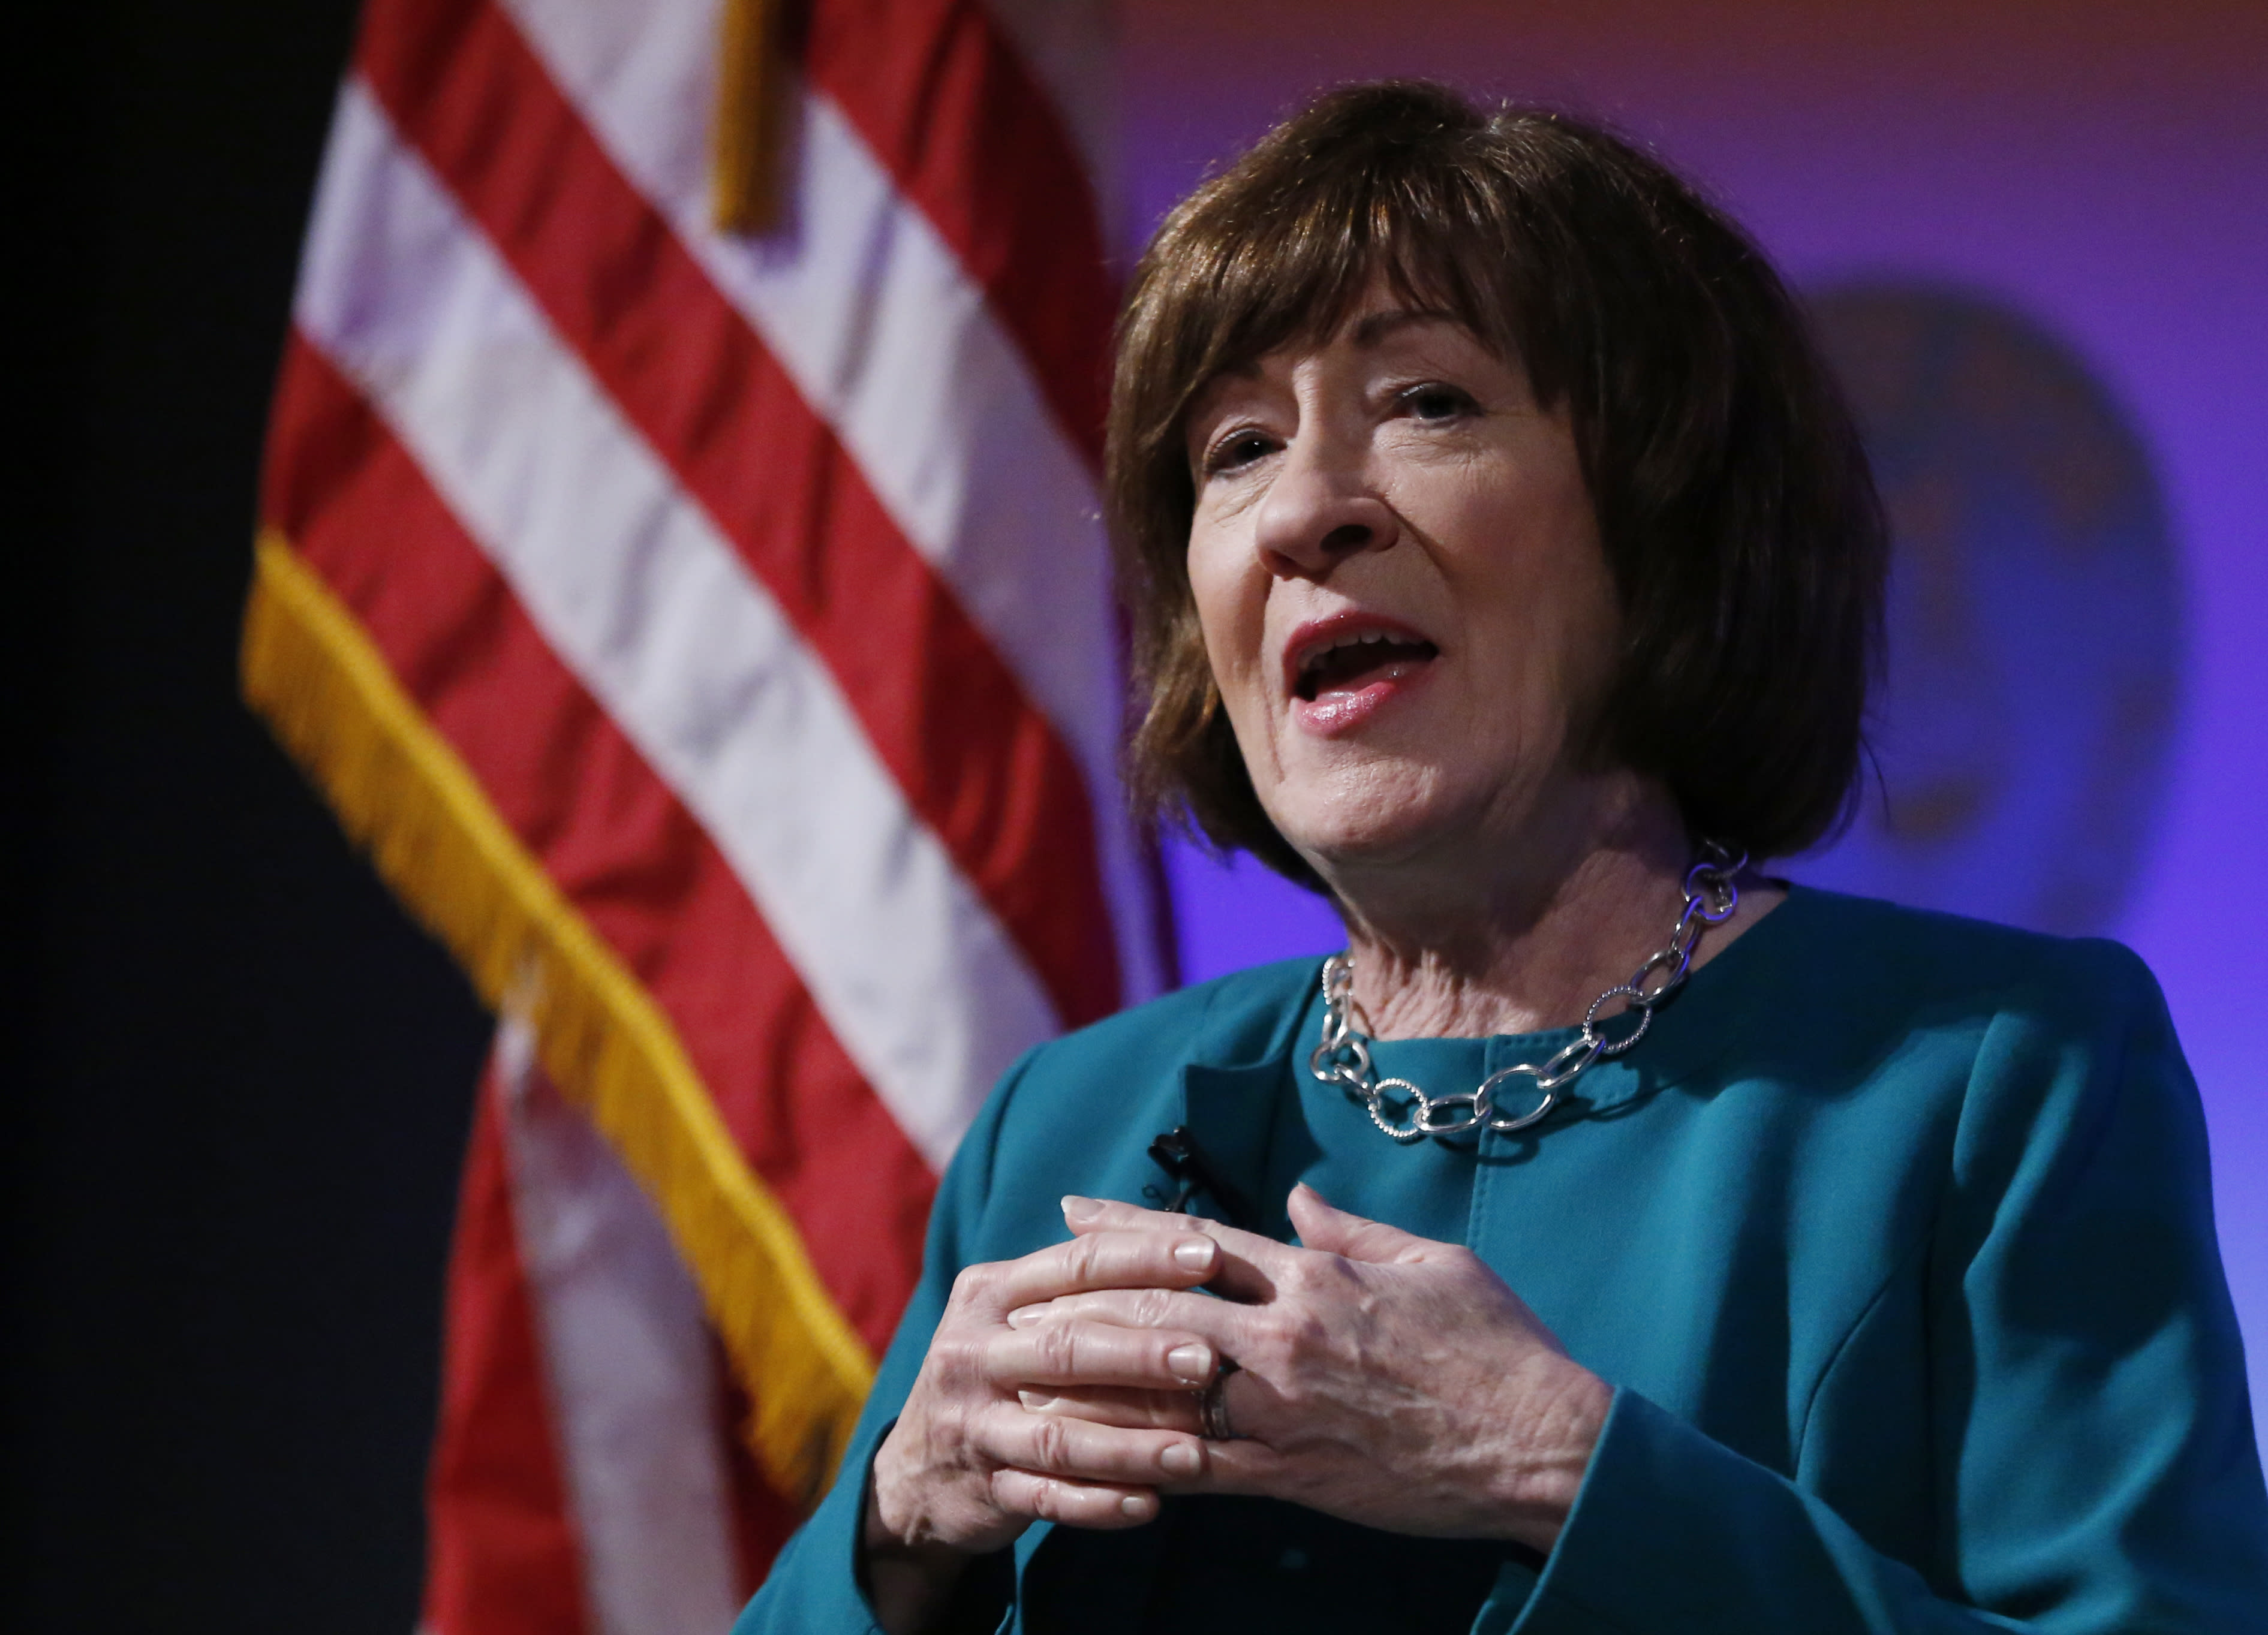 """U.S. Sen. Susan Collins, R-Maine, considered one of the few possible Republican """"no"""" votes on Supreme Court nominee Brett Kavanaugh, speaks at Saint Anselm College, Friday, Sept. 21, 2018, in Manchester, N.H. (AP Photo/Elise Amendola)"""